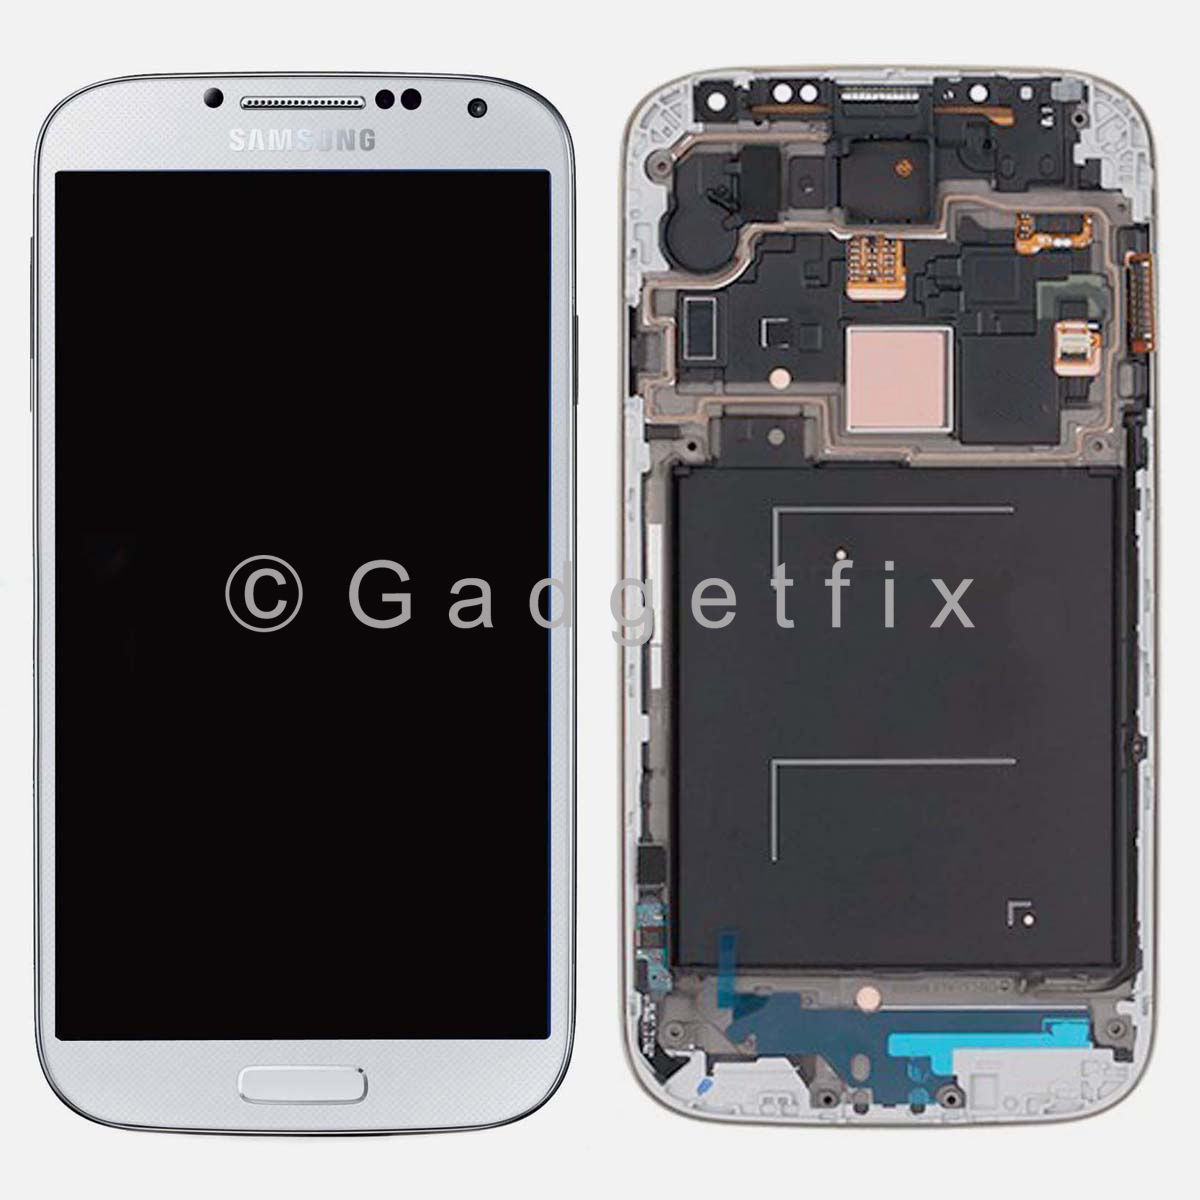 Samsung Galaxy S4 IV i9505 L720T LCD Screen Display Touch Digitizer Frame White